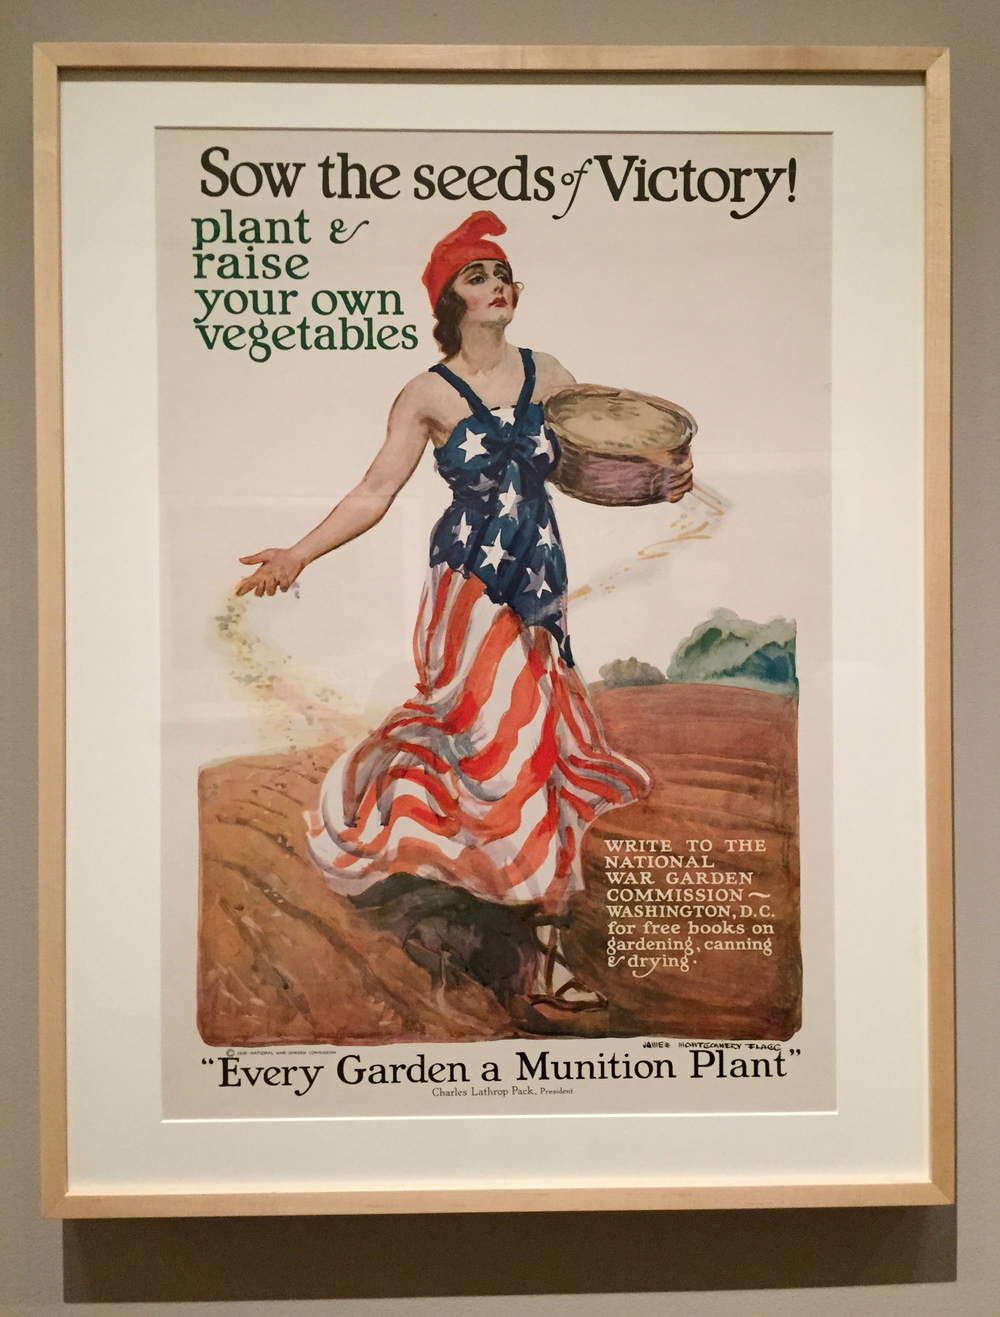 James Montgomery Flagg,  Sow the Seeds of Victory! - Plant and Raise Your Own Vegetables,  Color Lithograph, 1918